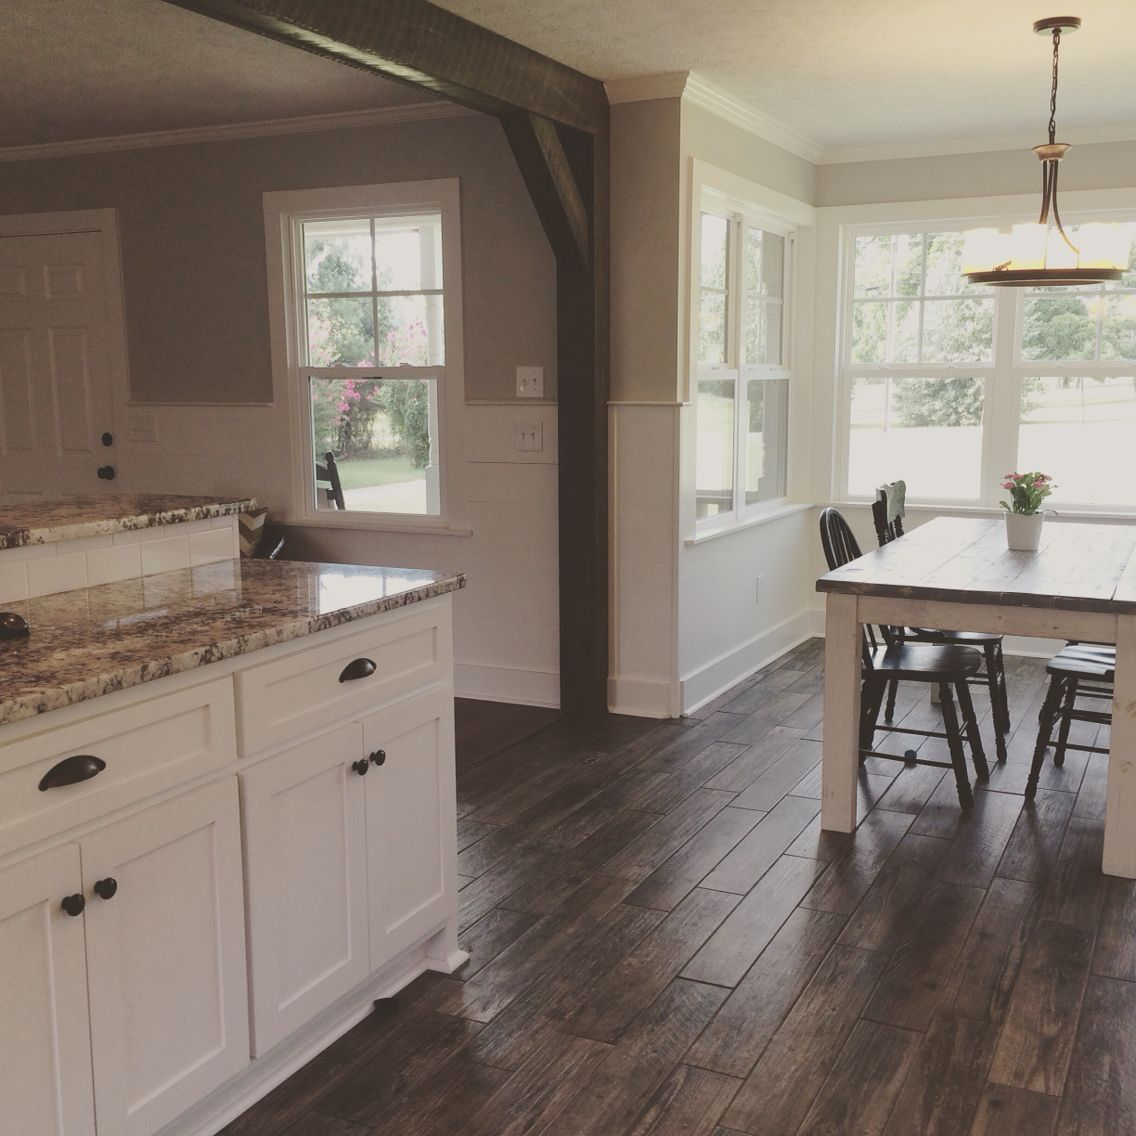 Fake Wood Countertops Kitchen Remodel Farmhouse Style Shiplap Cold Spring